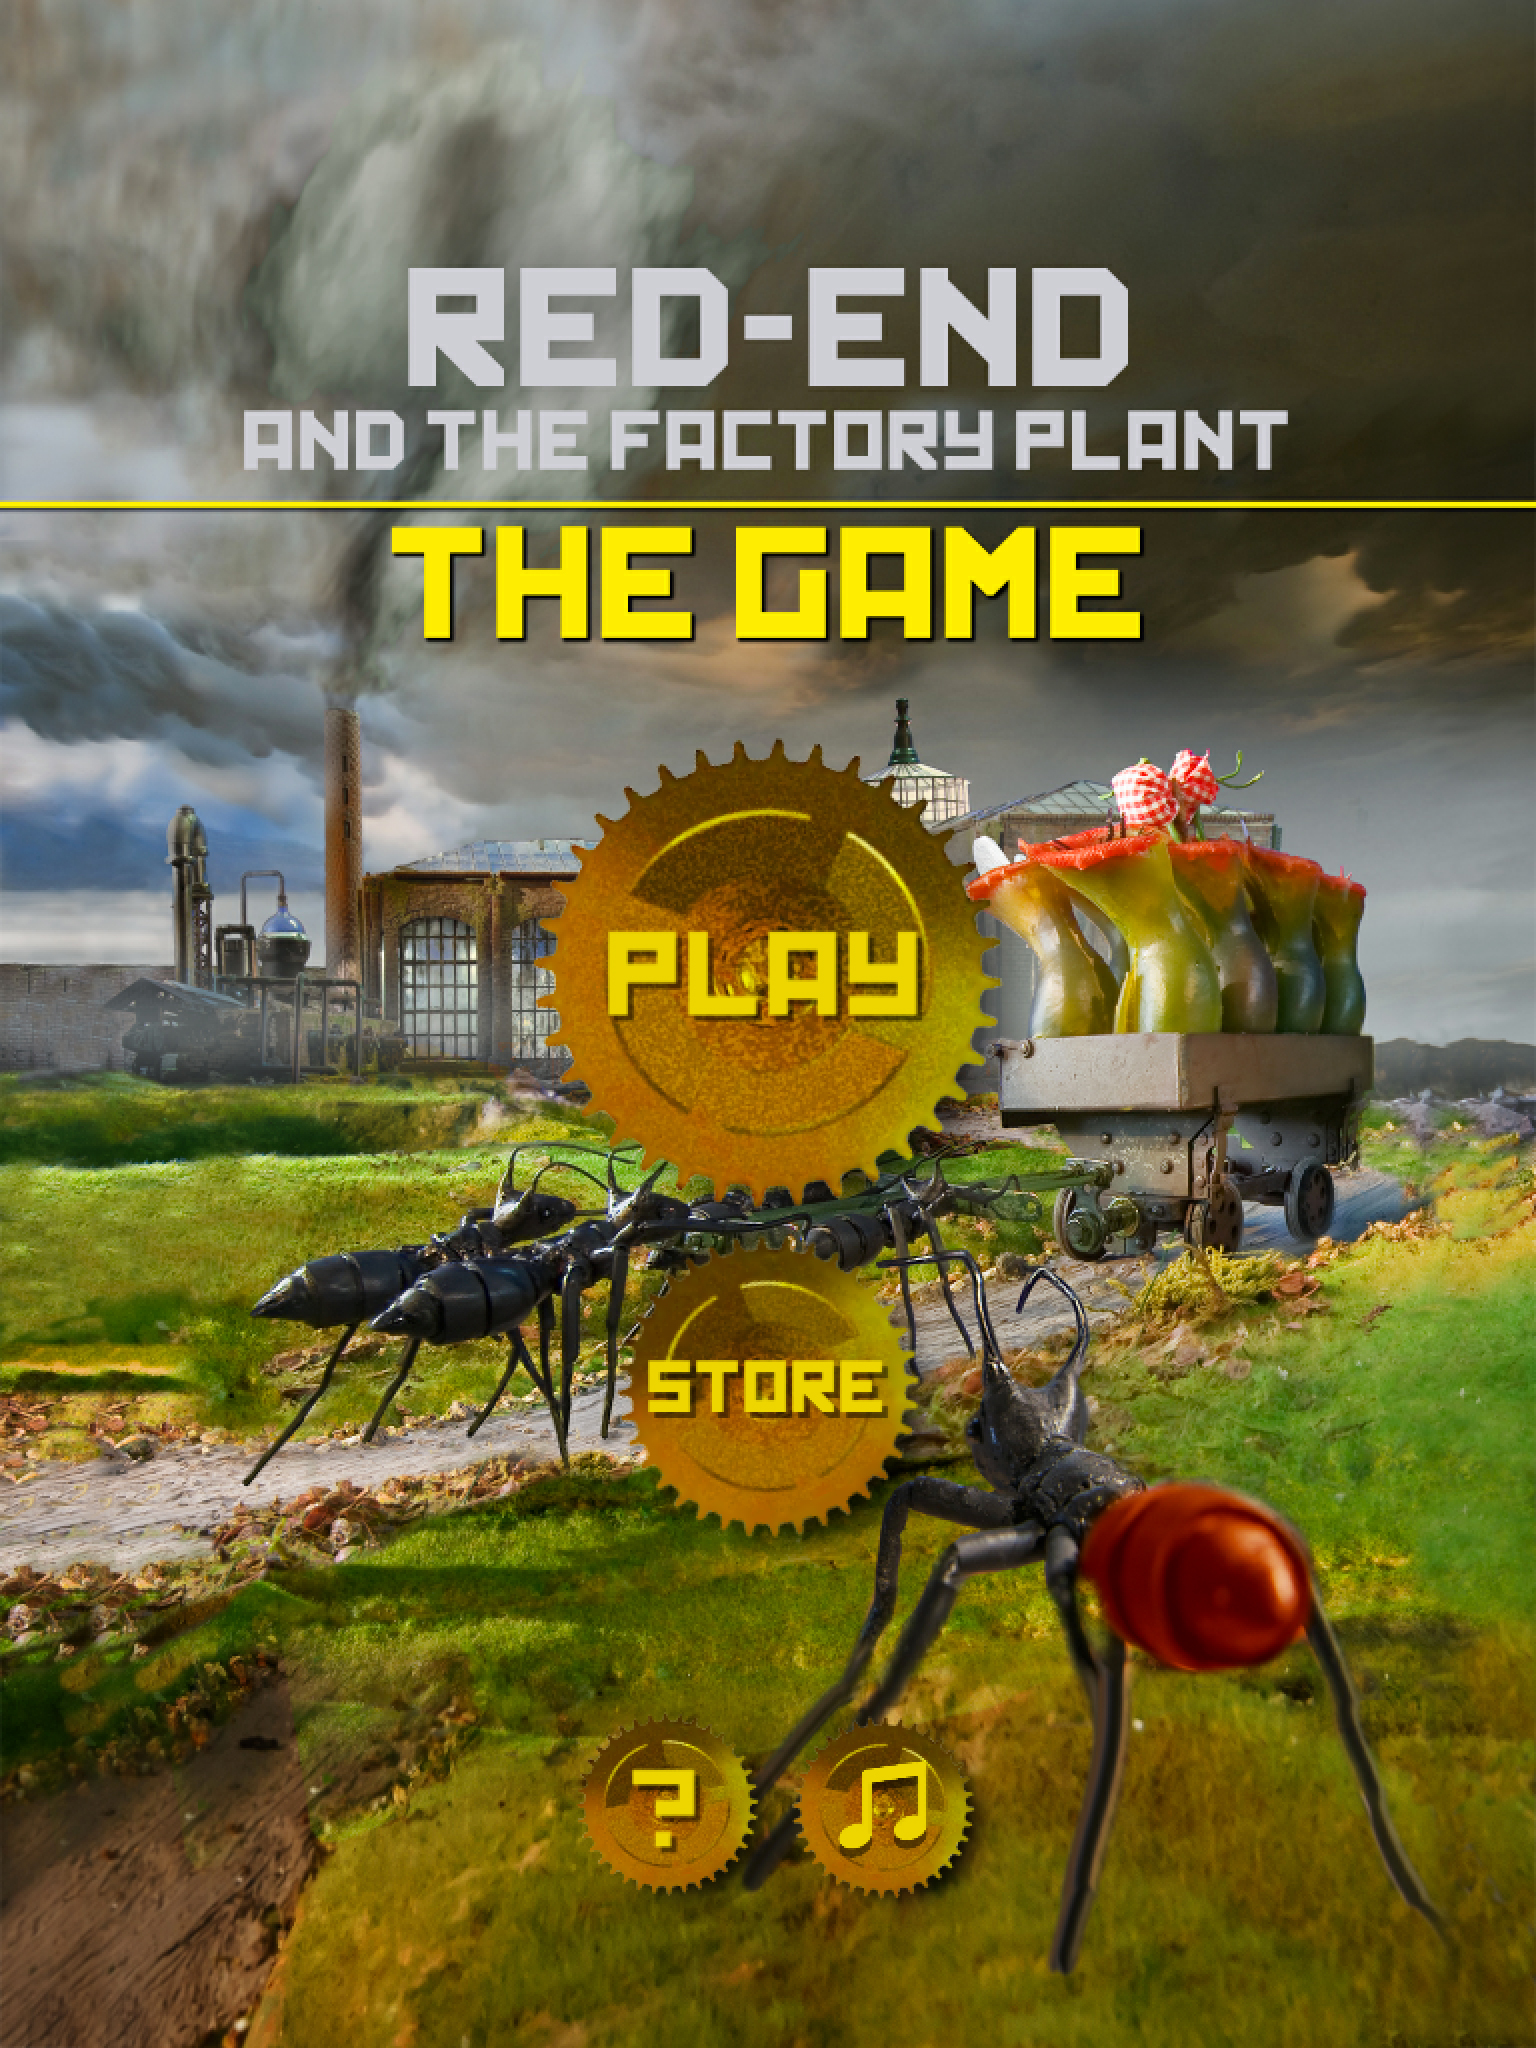 Redend the game